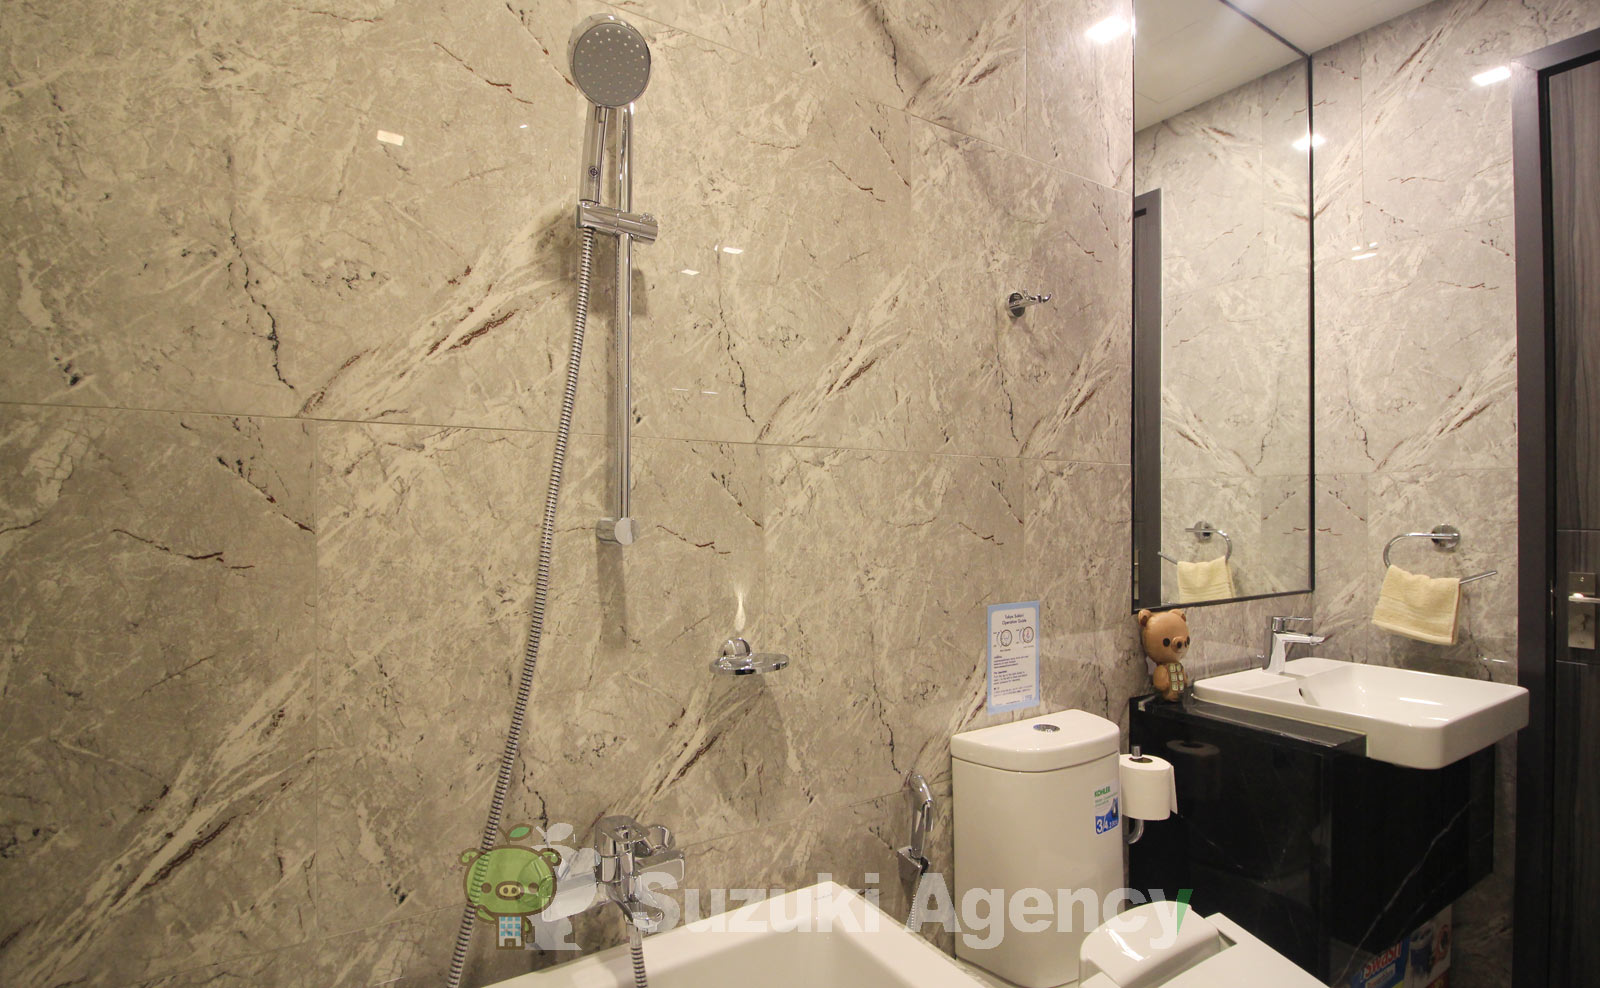 Ashton Asoke:2Bed Room Photos No.12